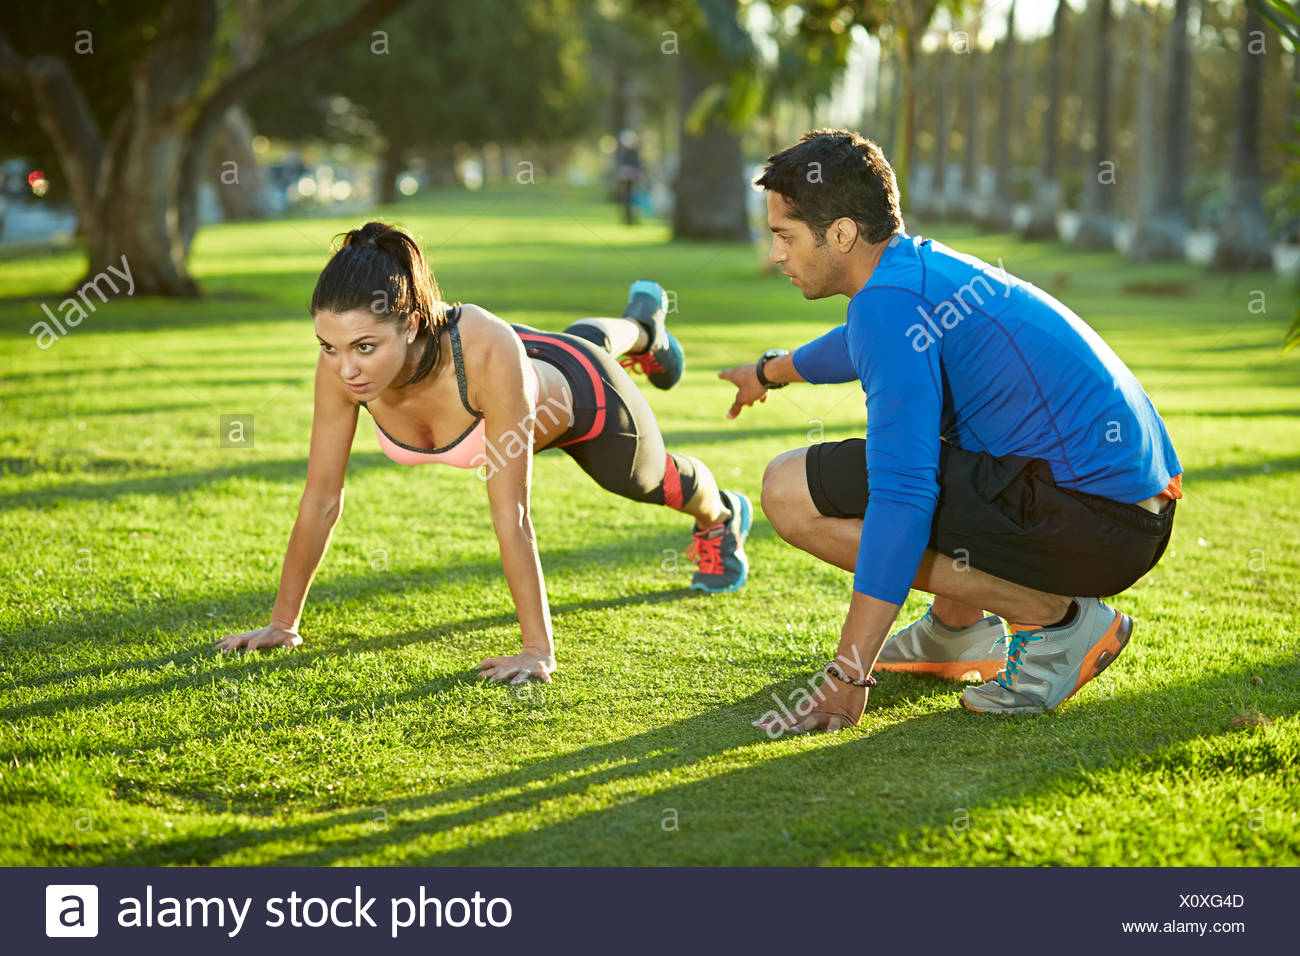 Personal trainer with woman doing plank exercise - Stock Image